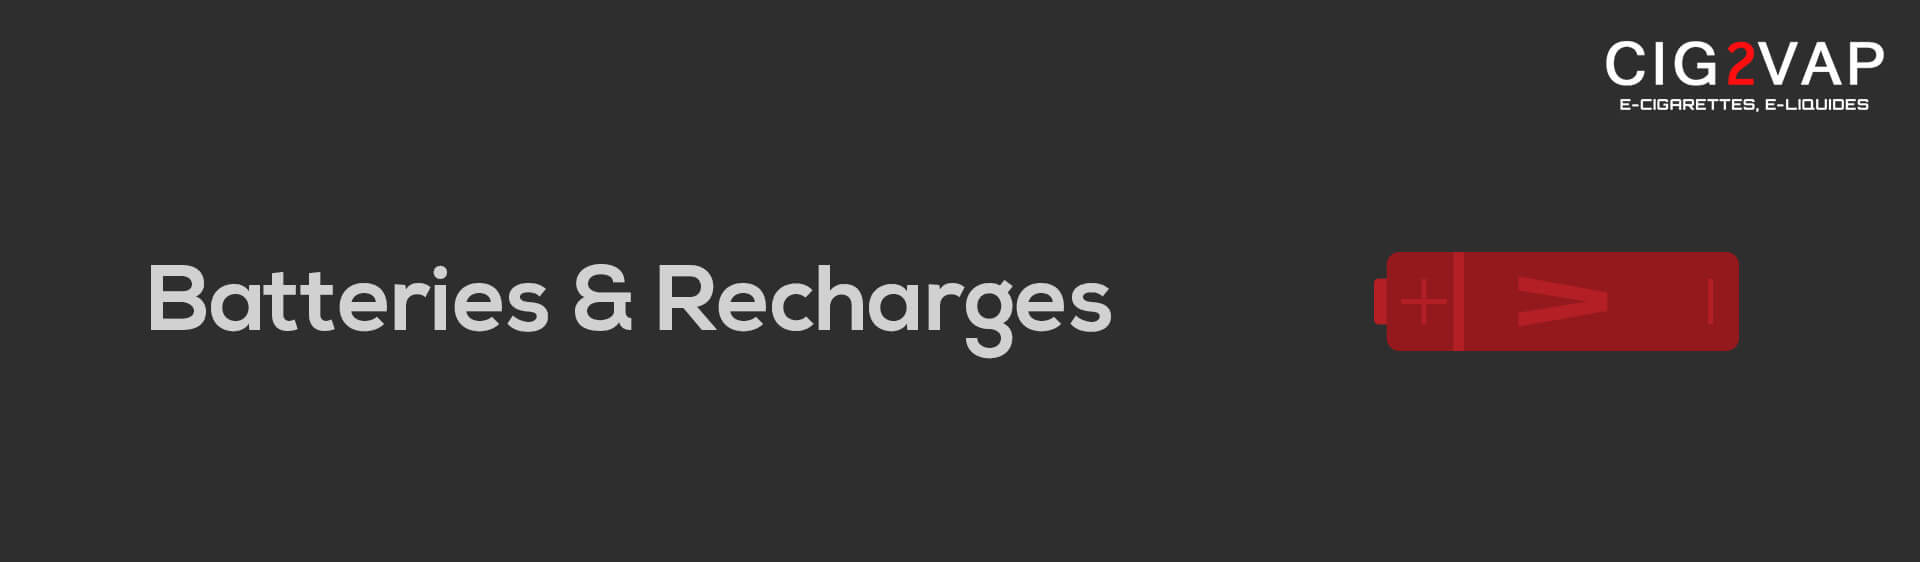 Batteries et recharges